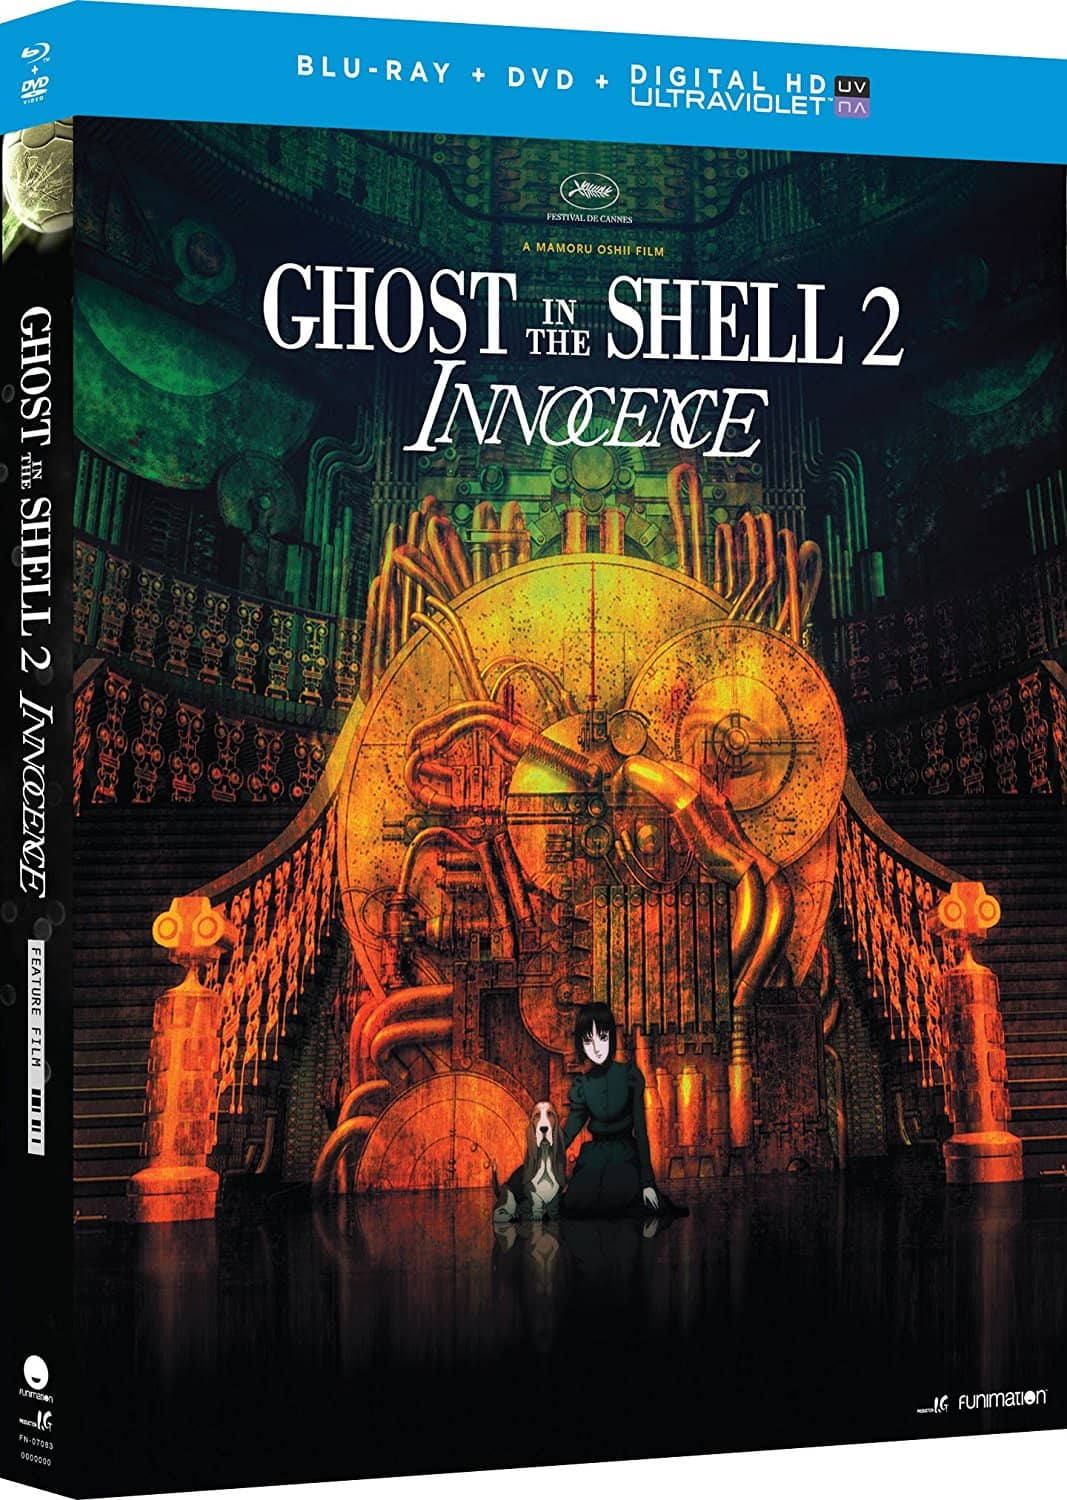 GHOST IN THE SHELL 2 INNOCENCE. BLU-RAY